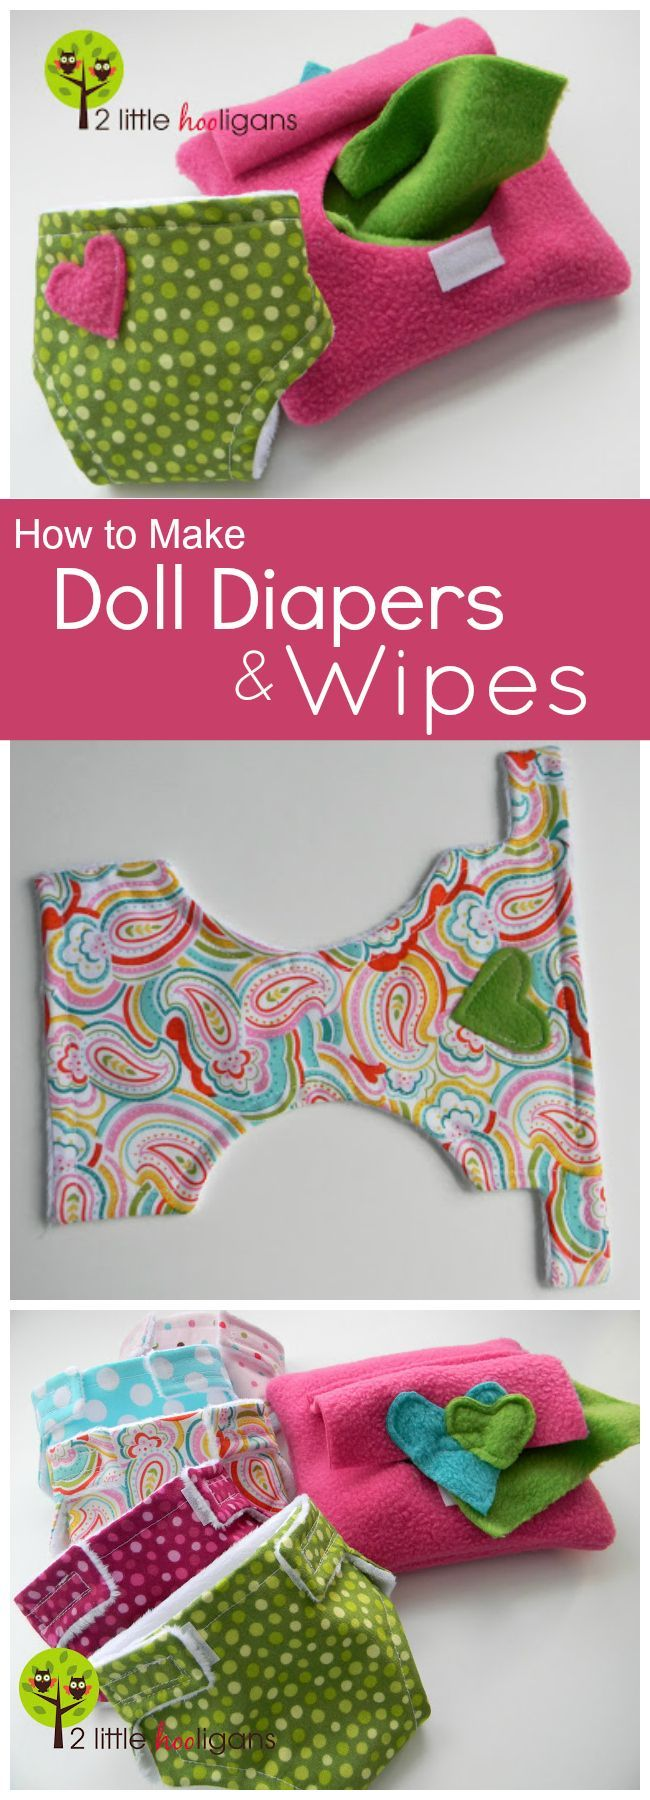 How to make Doll Diapers and Wipes case. These make fabulous handmade gifts for little girls!